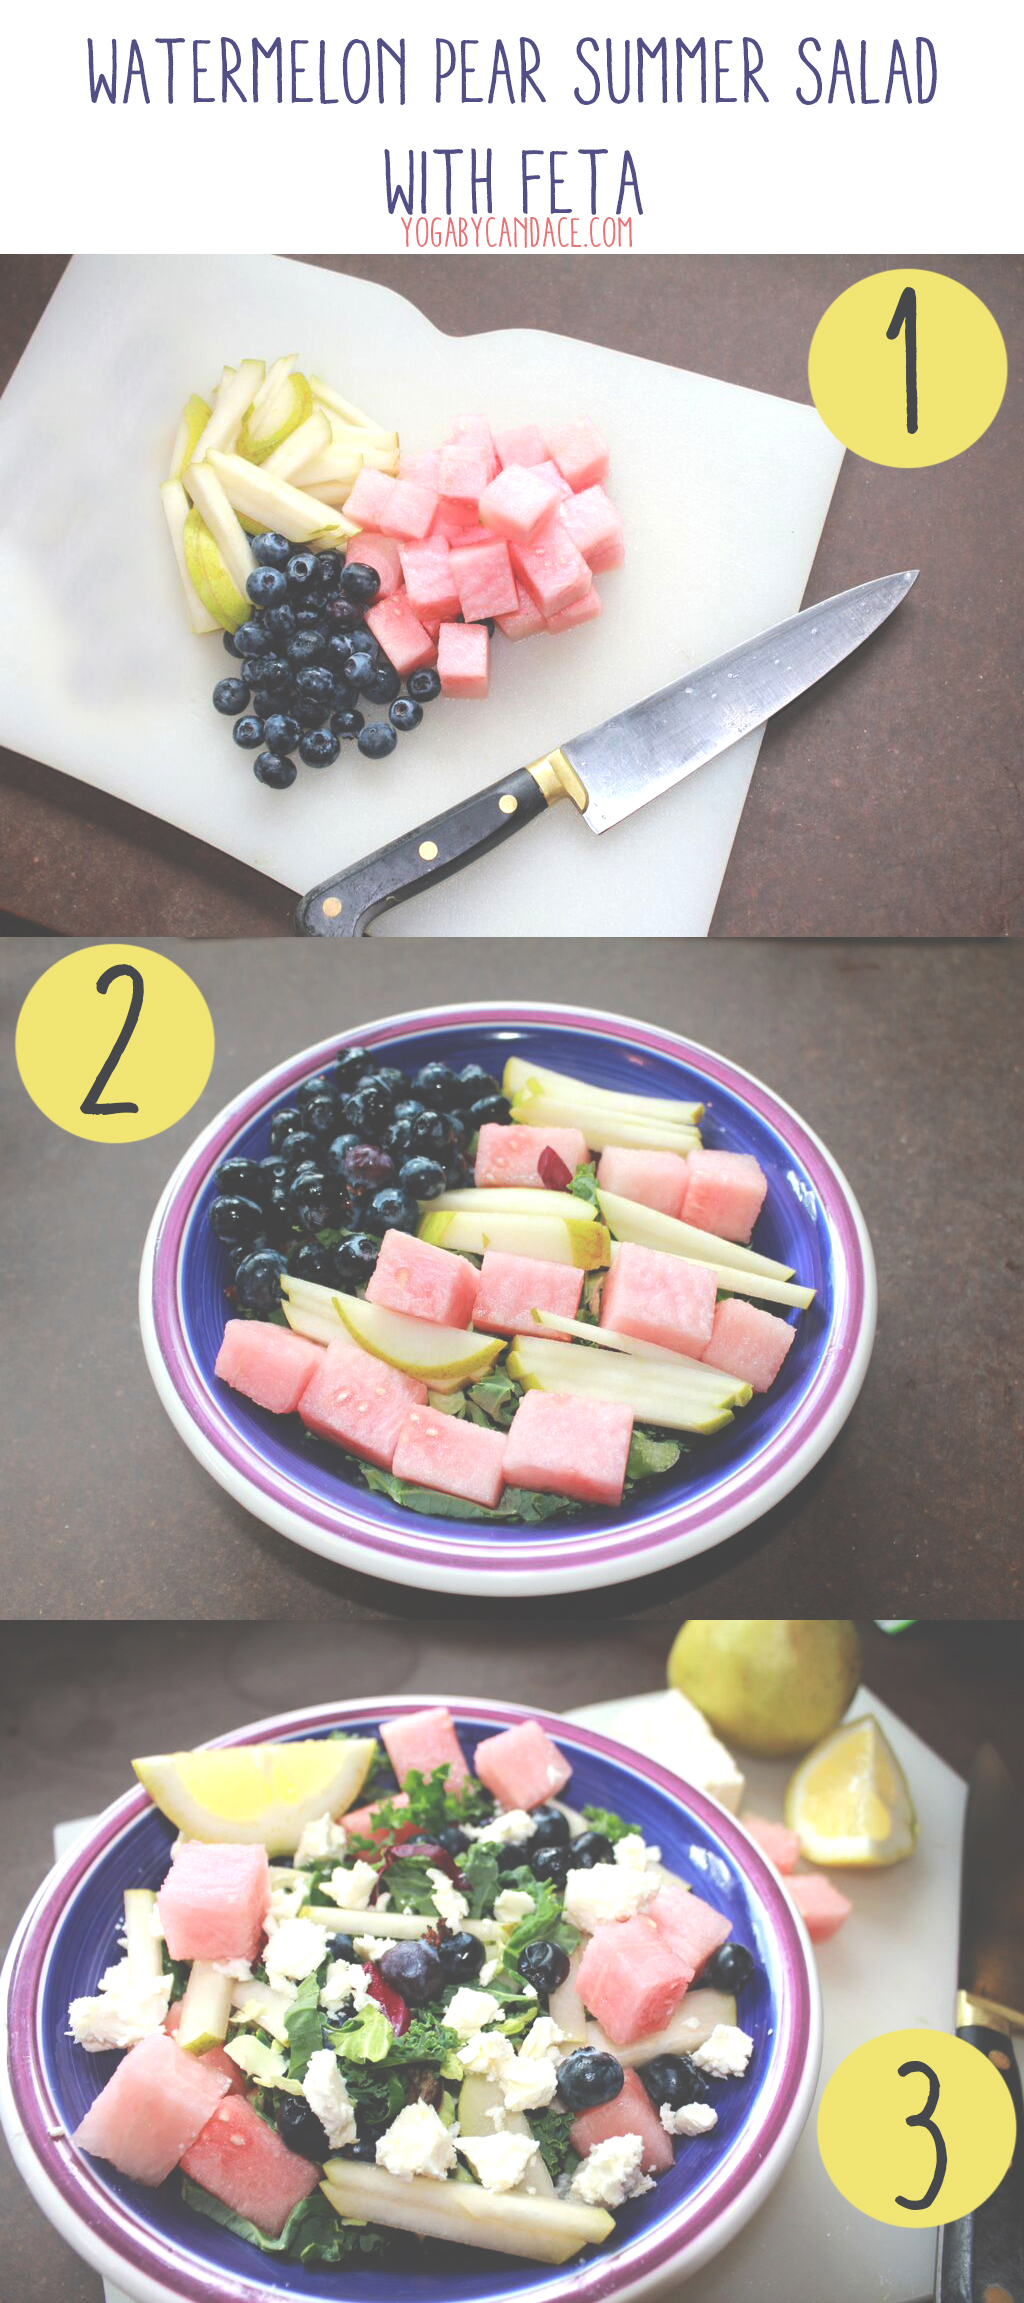 Pin now, make later! Watermelon pear summer salad with feta